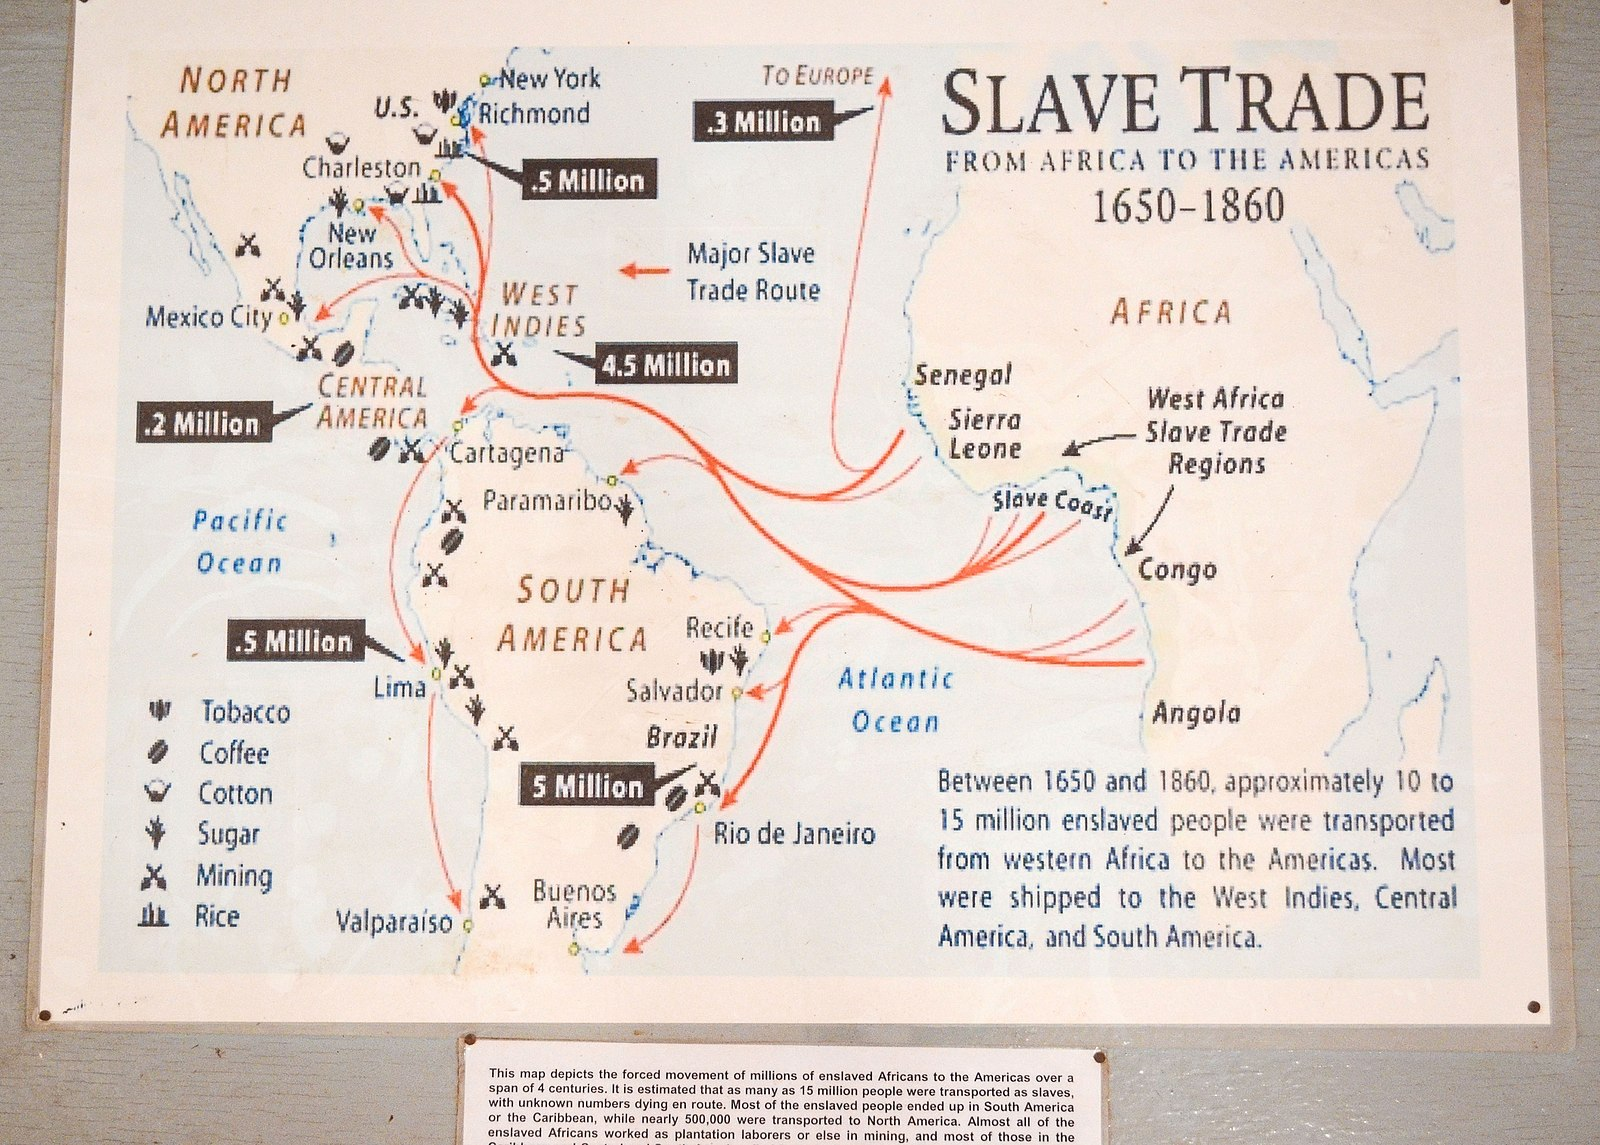 the slave trade route between africa and The transatlantic slave trade profoundly diminished africa's prospective to develop economically and uphold its social and political stability socially, the biggest impact the trans-atlantic slave trade had on west africa was a decrease in their population statistics, gathered from western civilization: a.